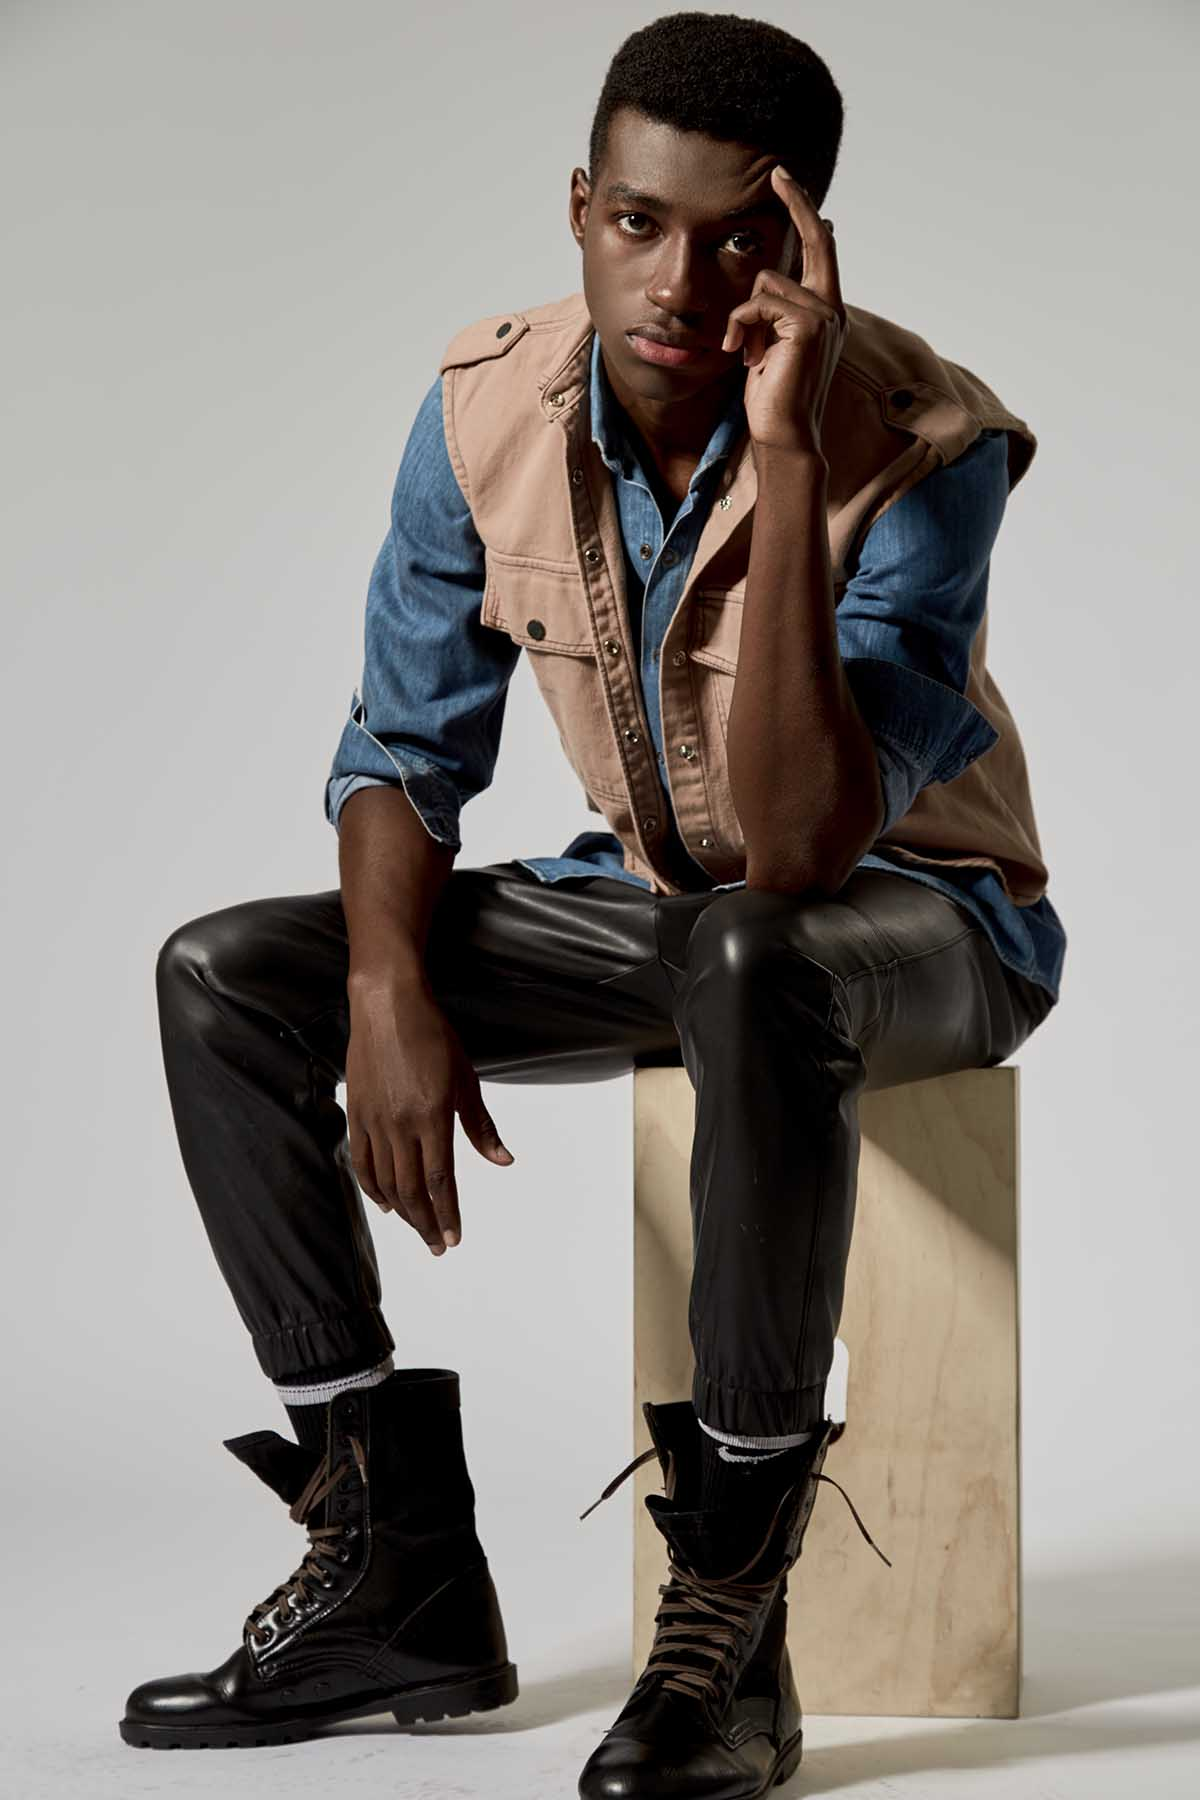 Nicolas Mawete by Jô Paiva for Brazilian Male Model